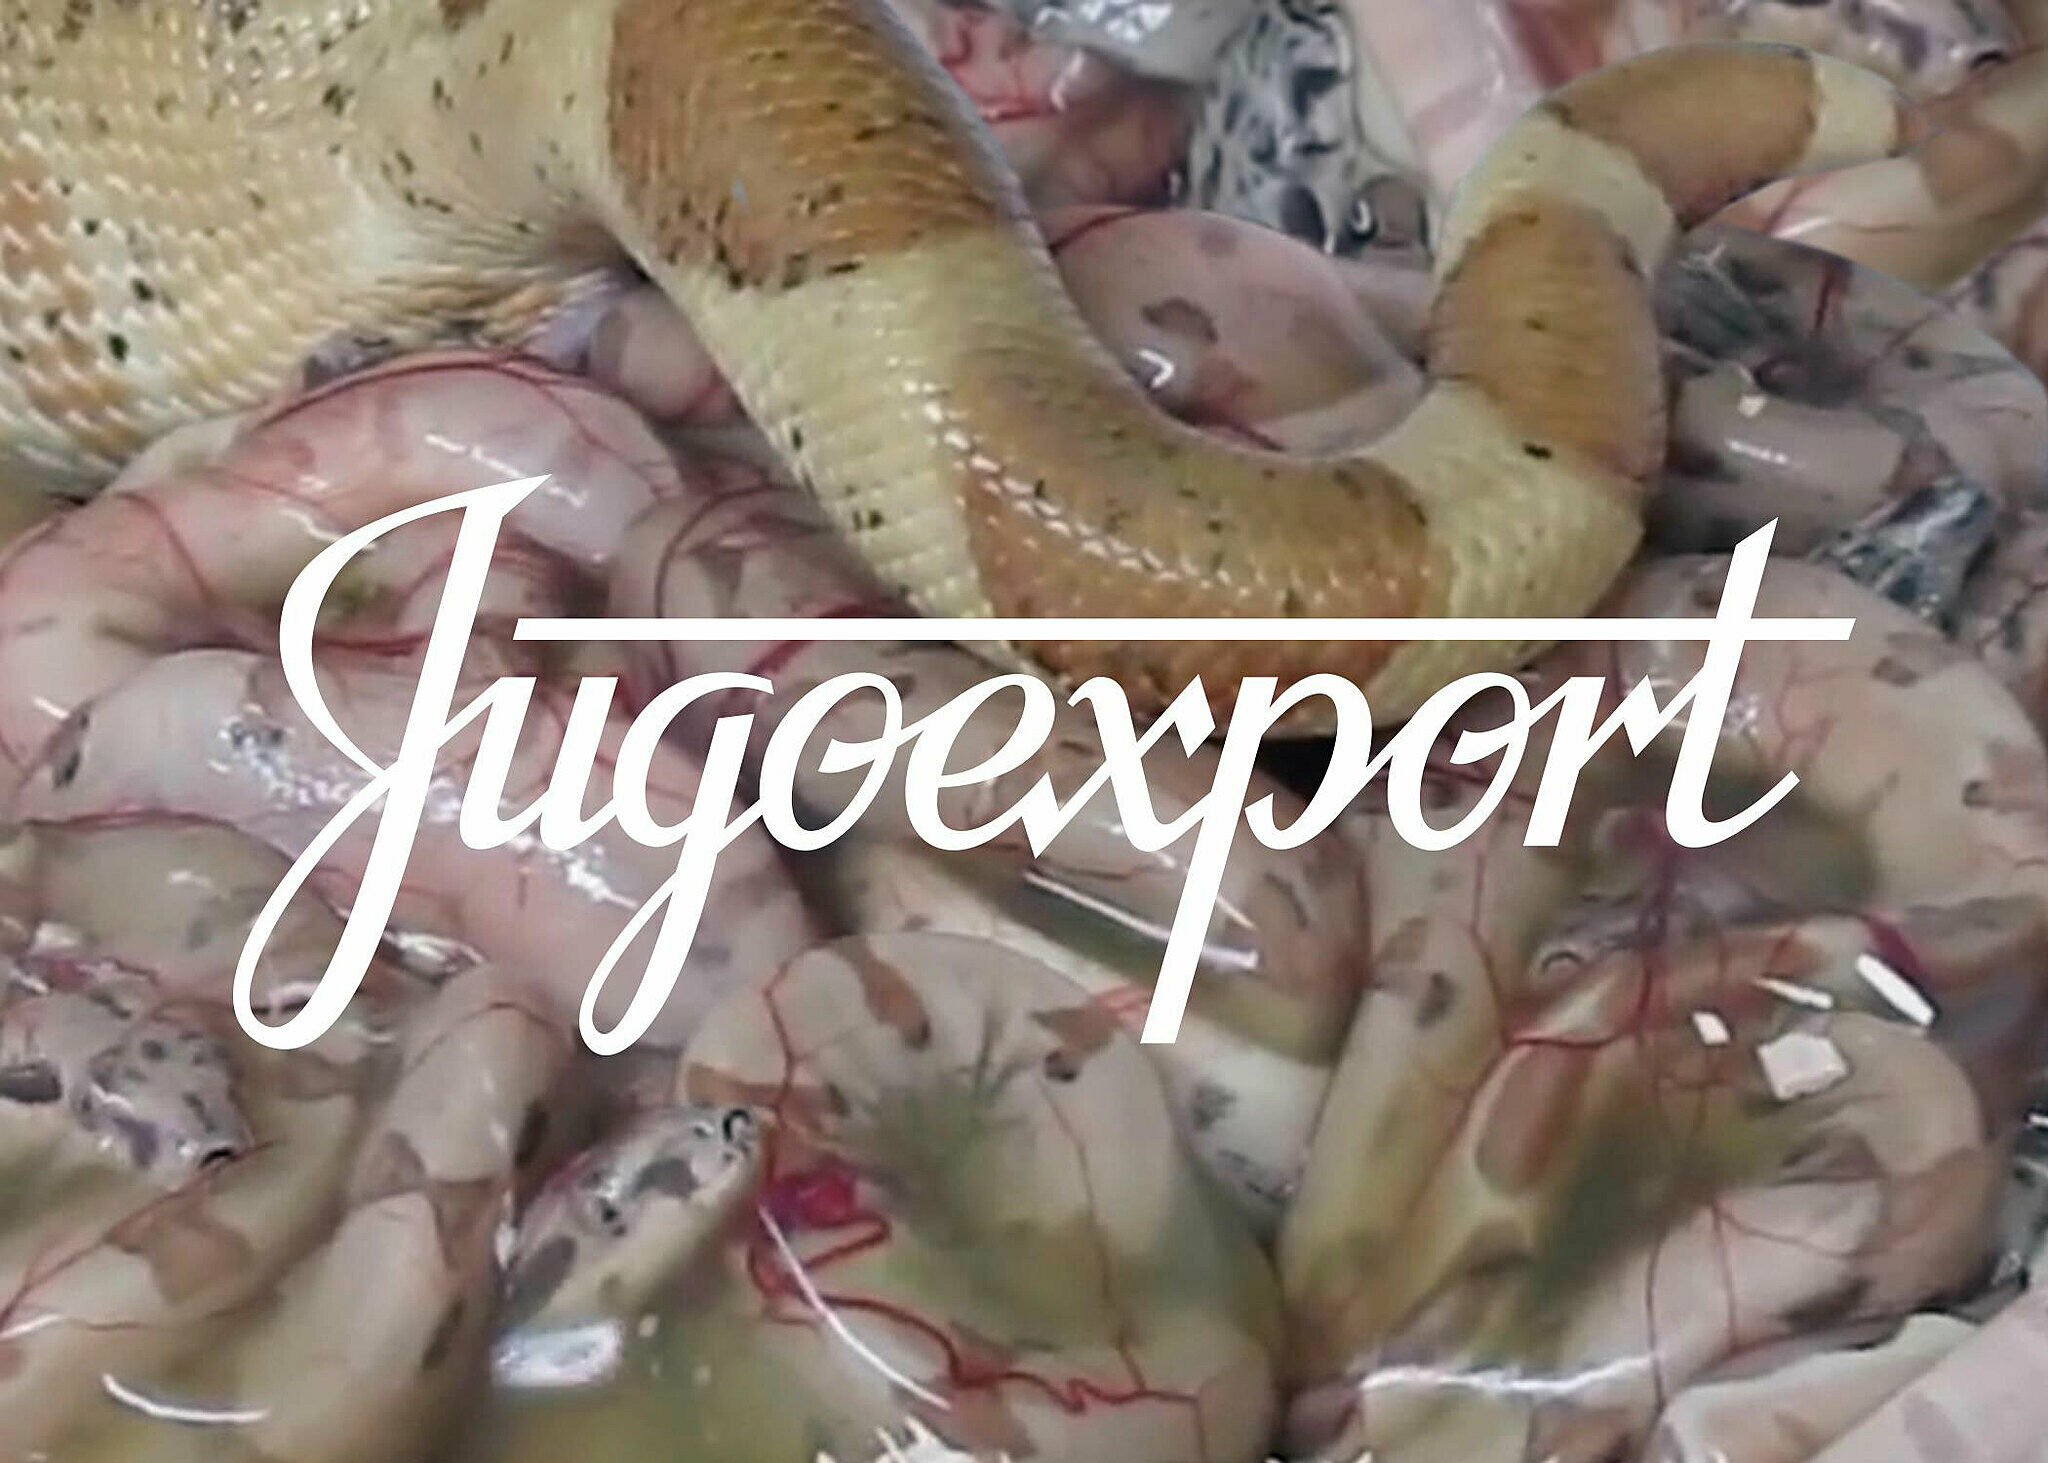 "Word ""Jugoexport"" superimposed over image of snakes"